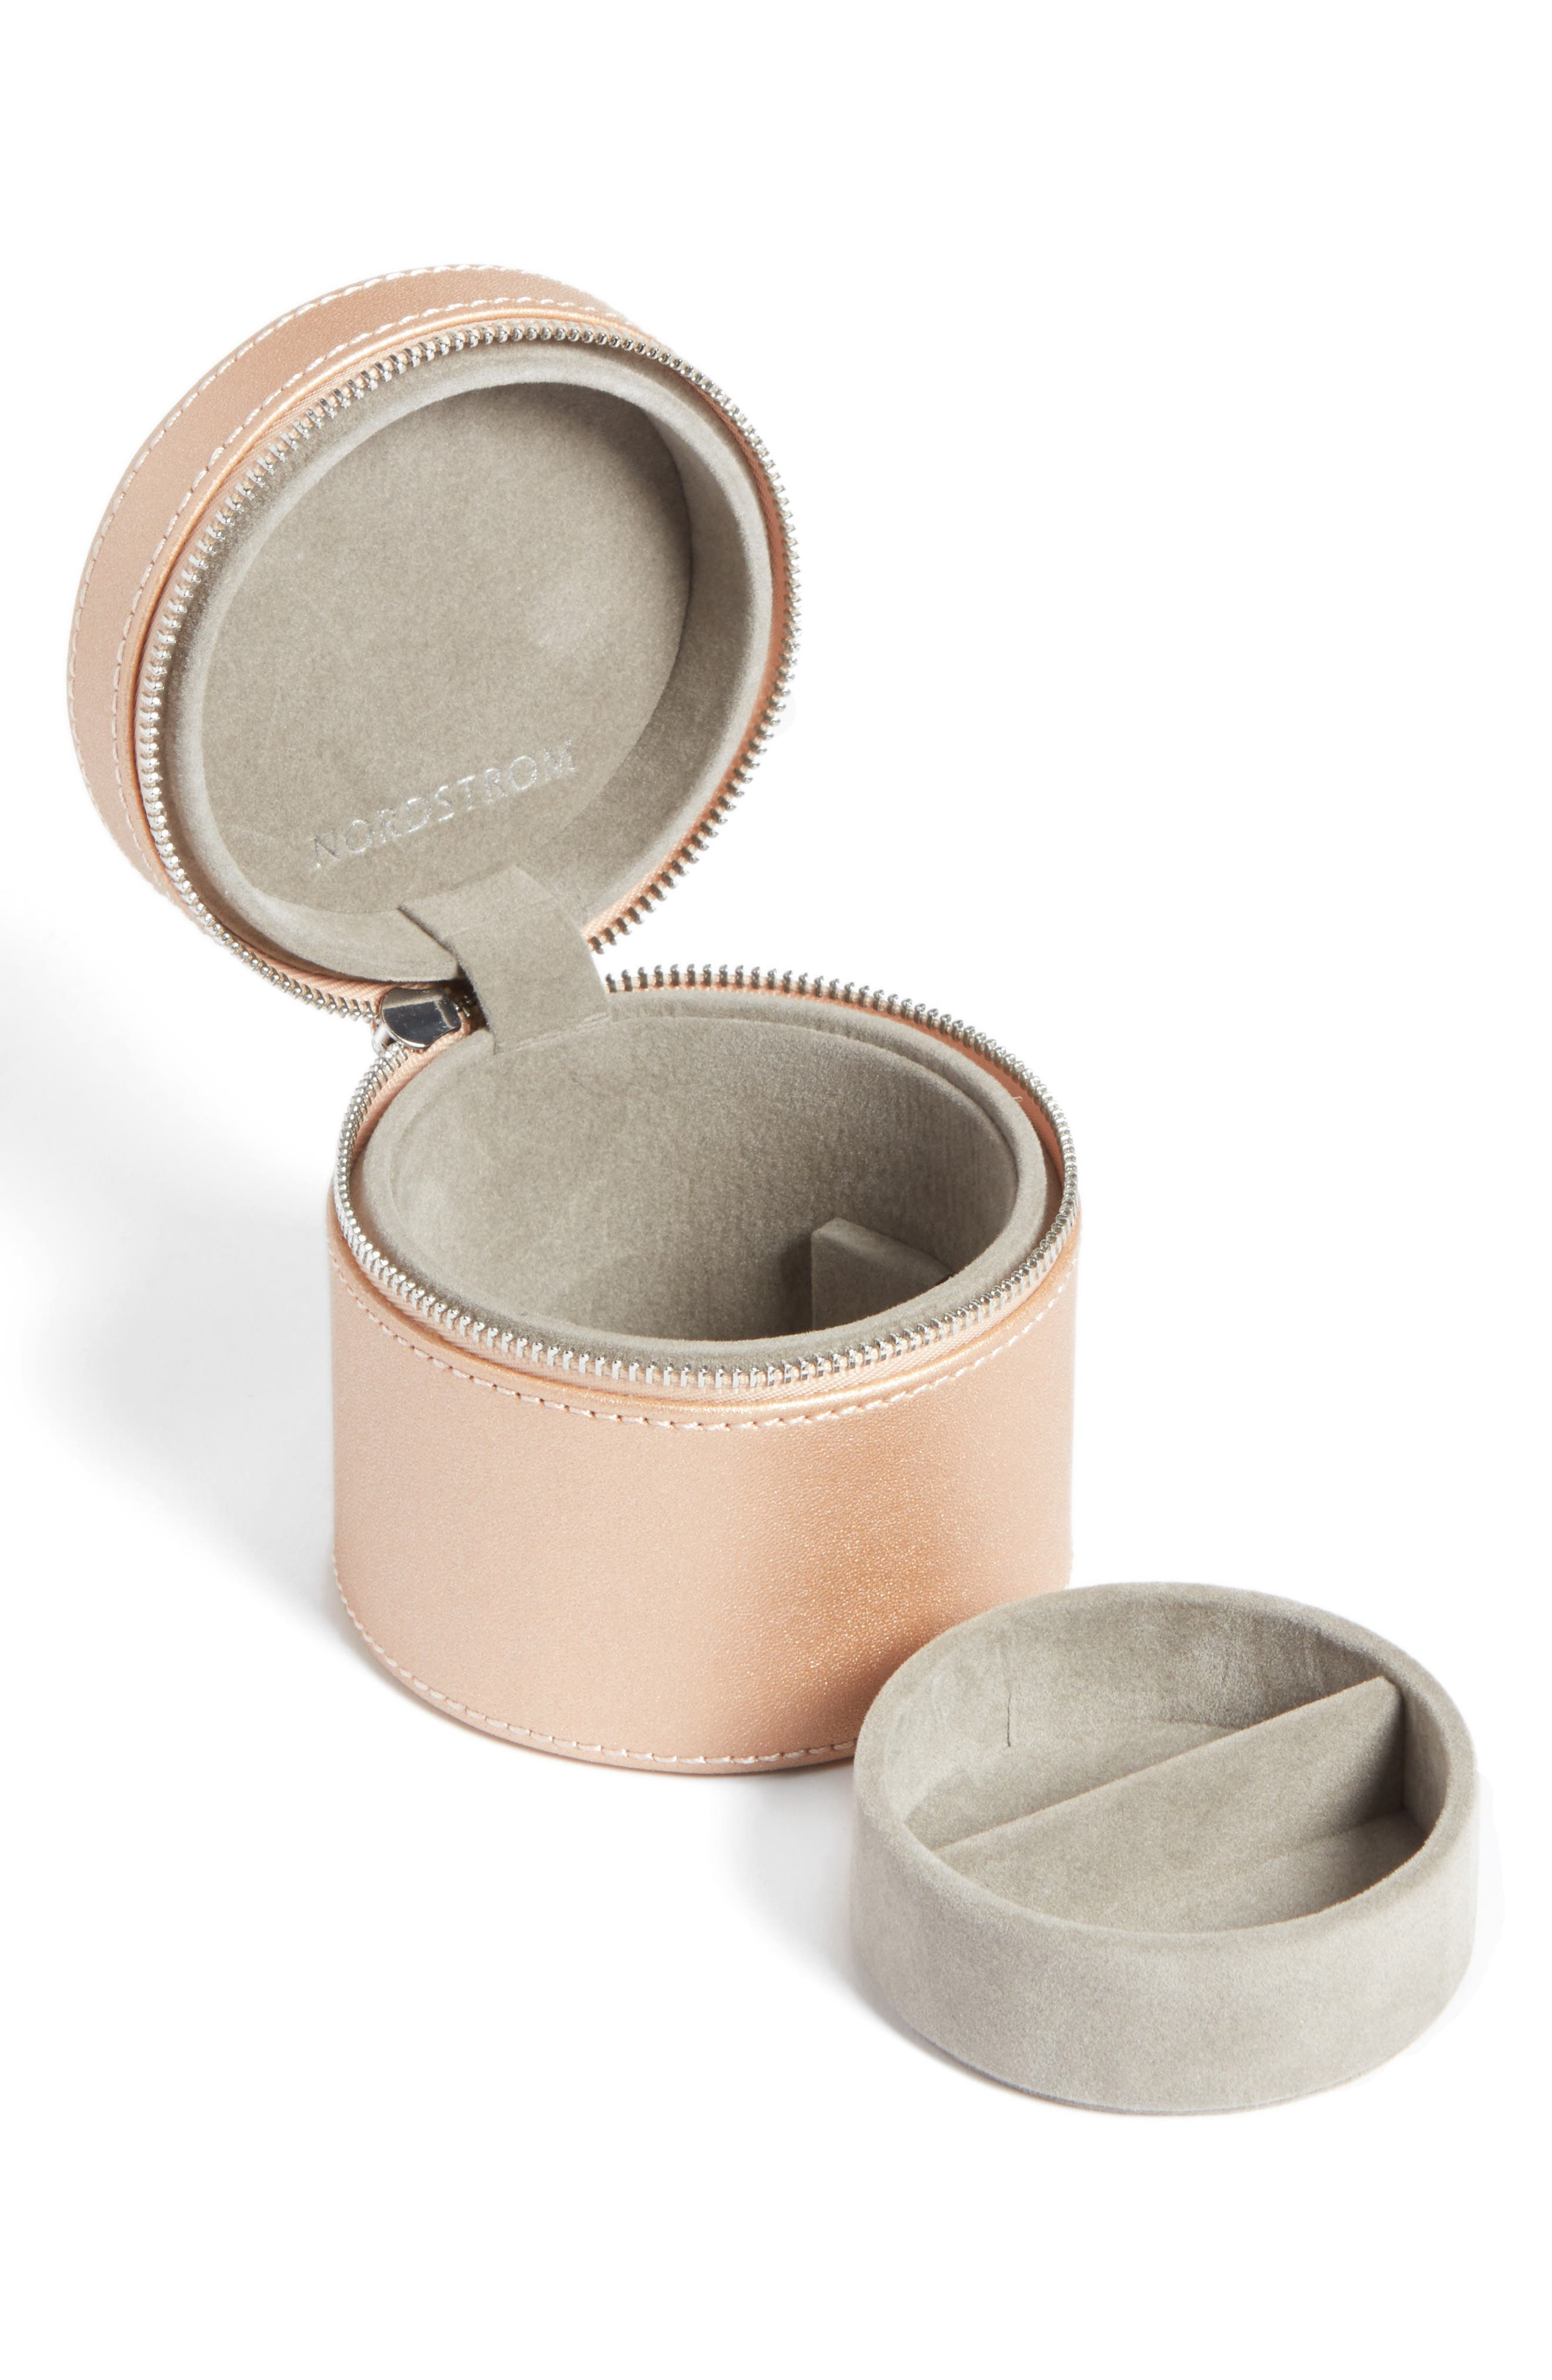 Small Round Zippered Jewelry Case,                             Alternate thumbnail 6, color,